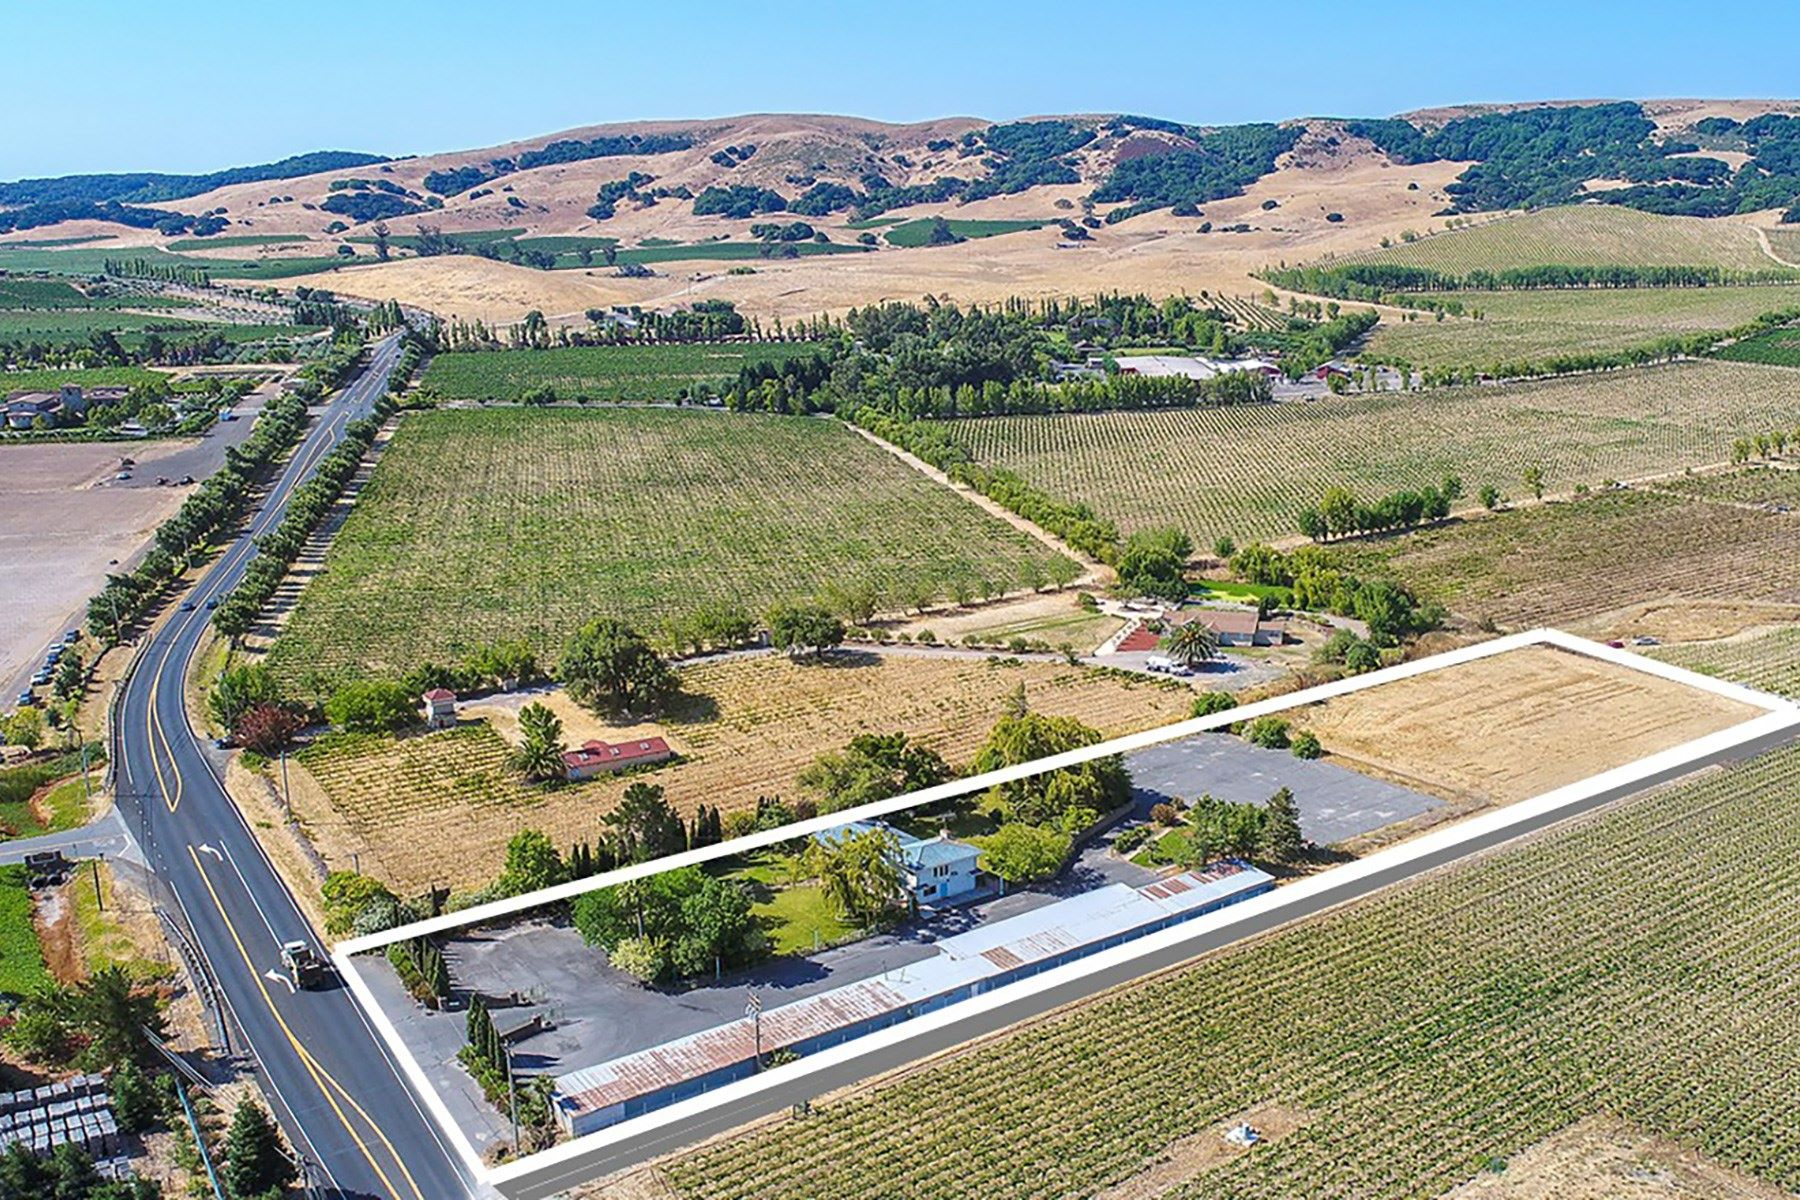 Moradia para Venda às Desirable Home In The Carneros Region 24265 Arnold Dr Sonoma, Califórnia, 95476 Estados Unidos